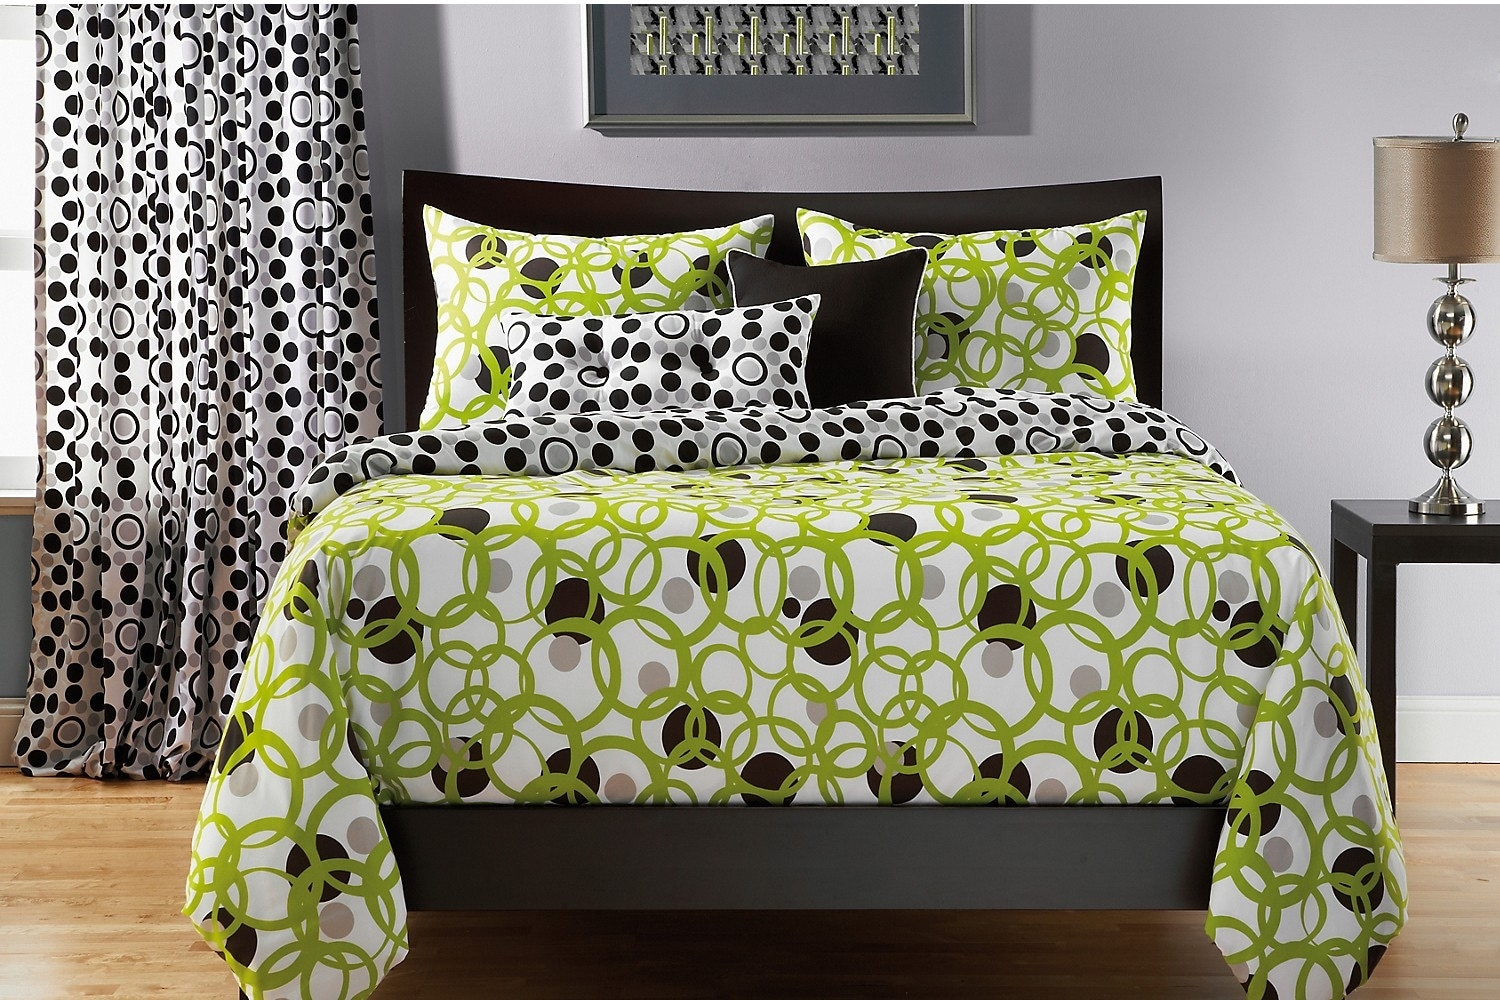 Mattresses and Bedding - Full Circle Reversible 4 Piece Queen Duvet Cover Set - Green